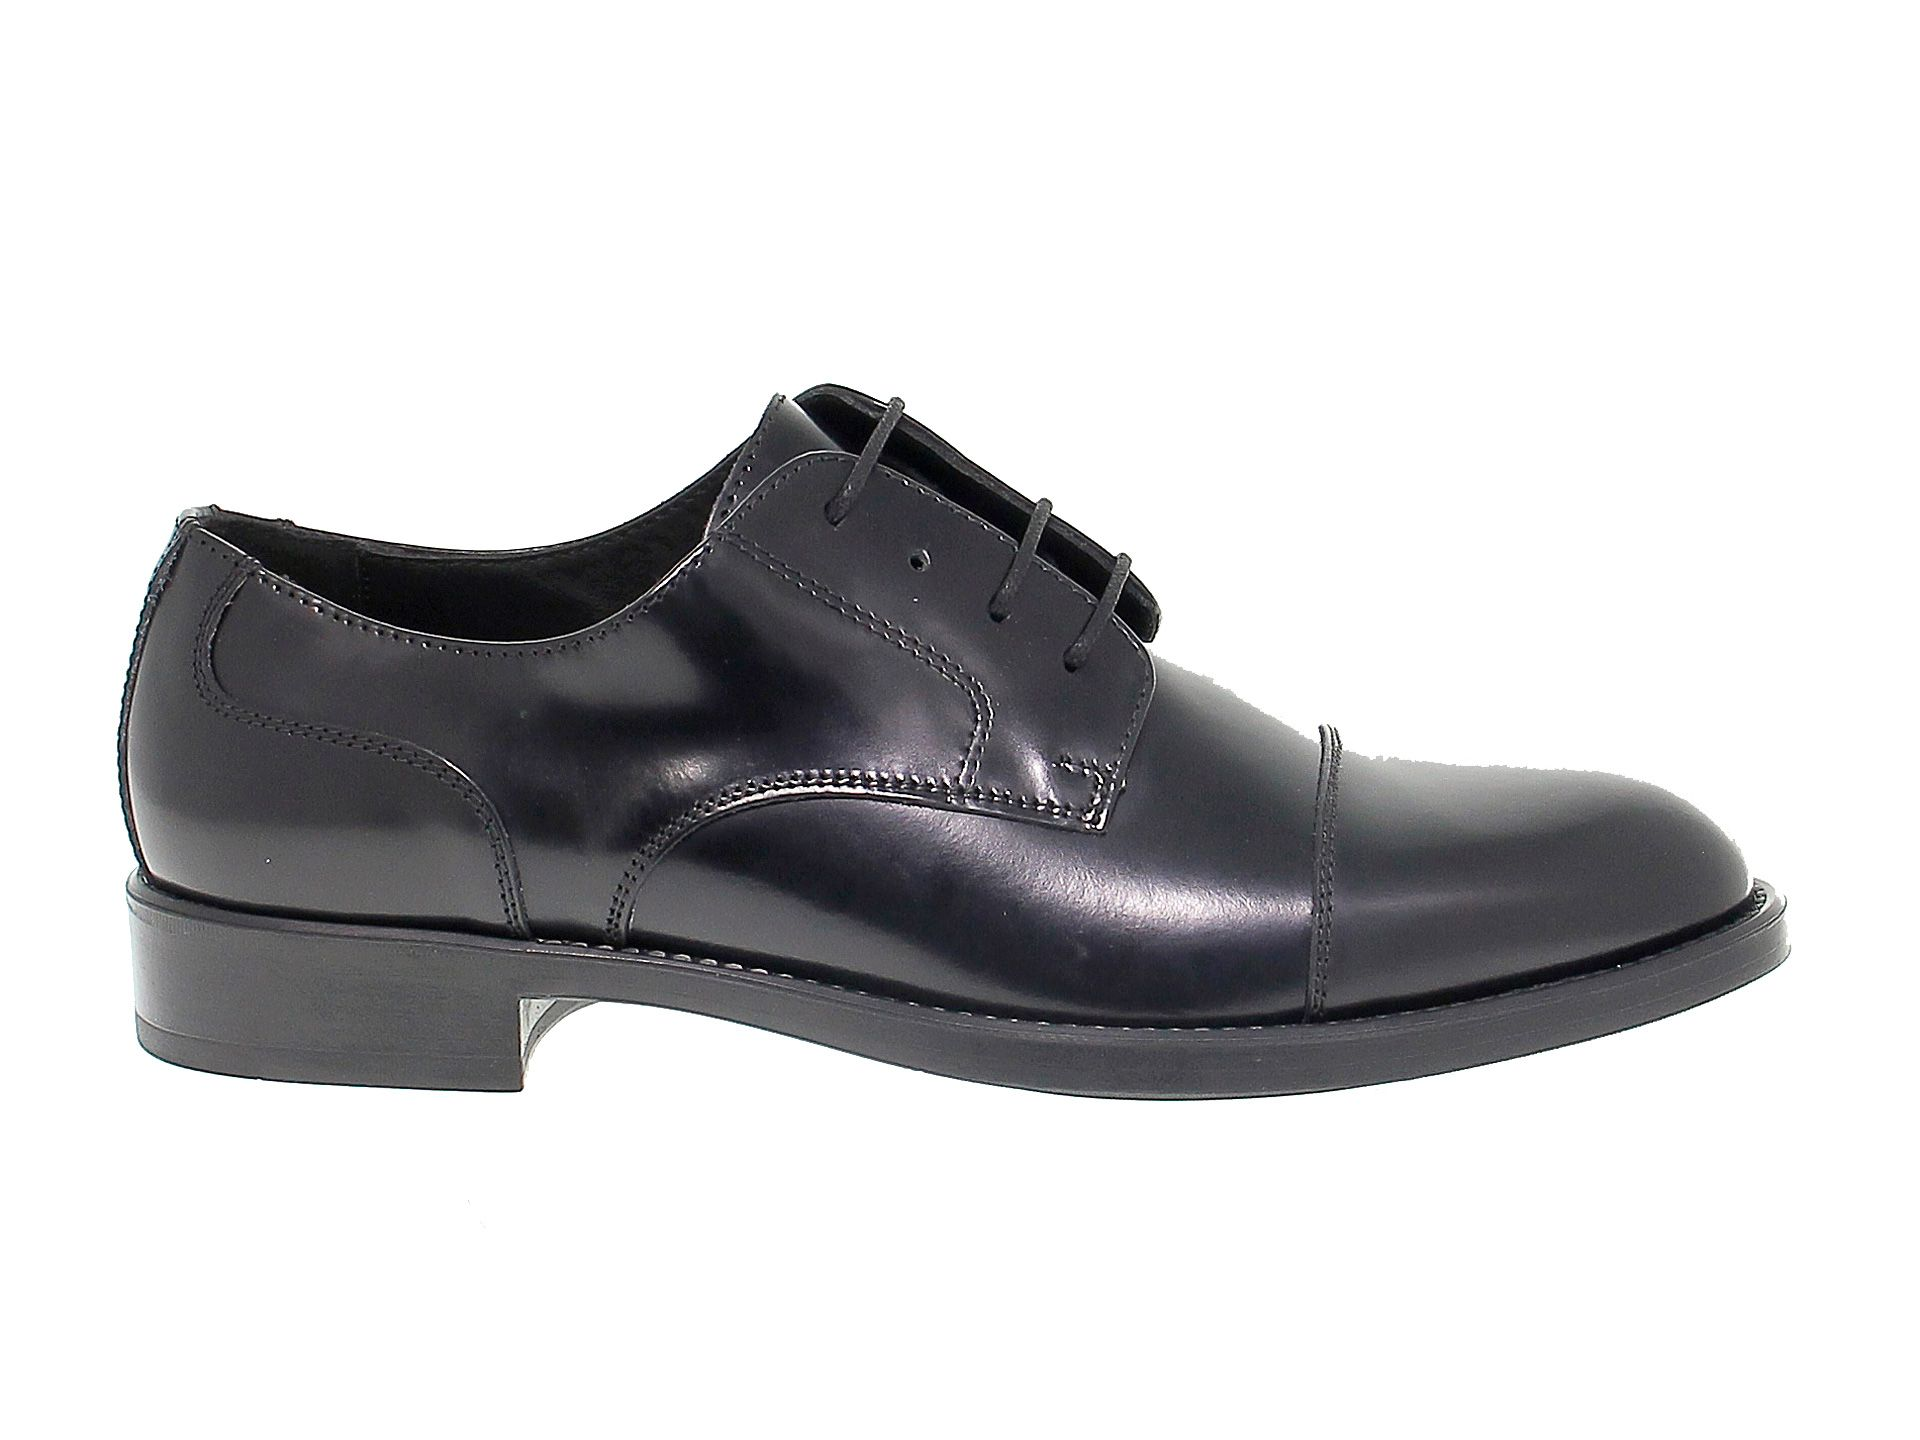 ANTICA CUOIERIA MEN'S ANTIC20622 BLACK LEATHER LACE-UP SHOES